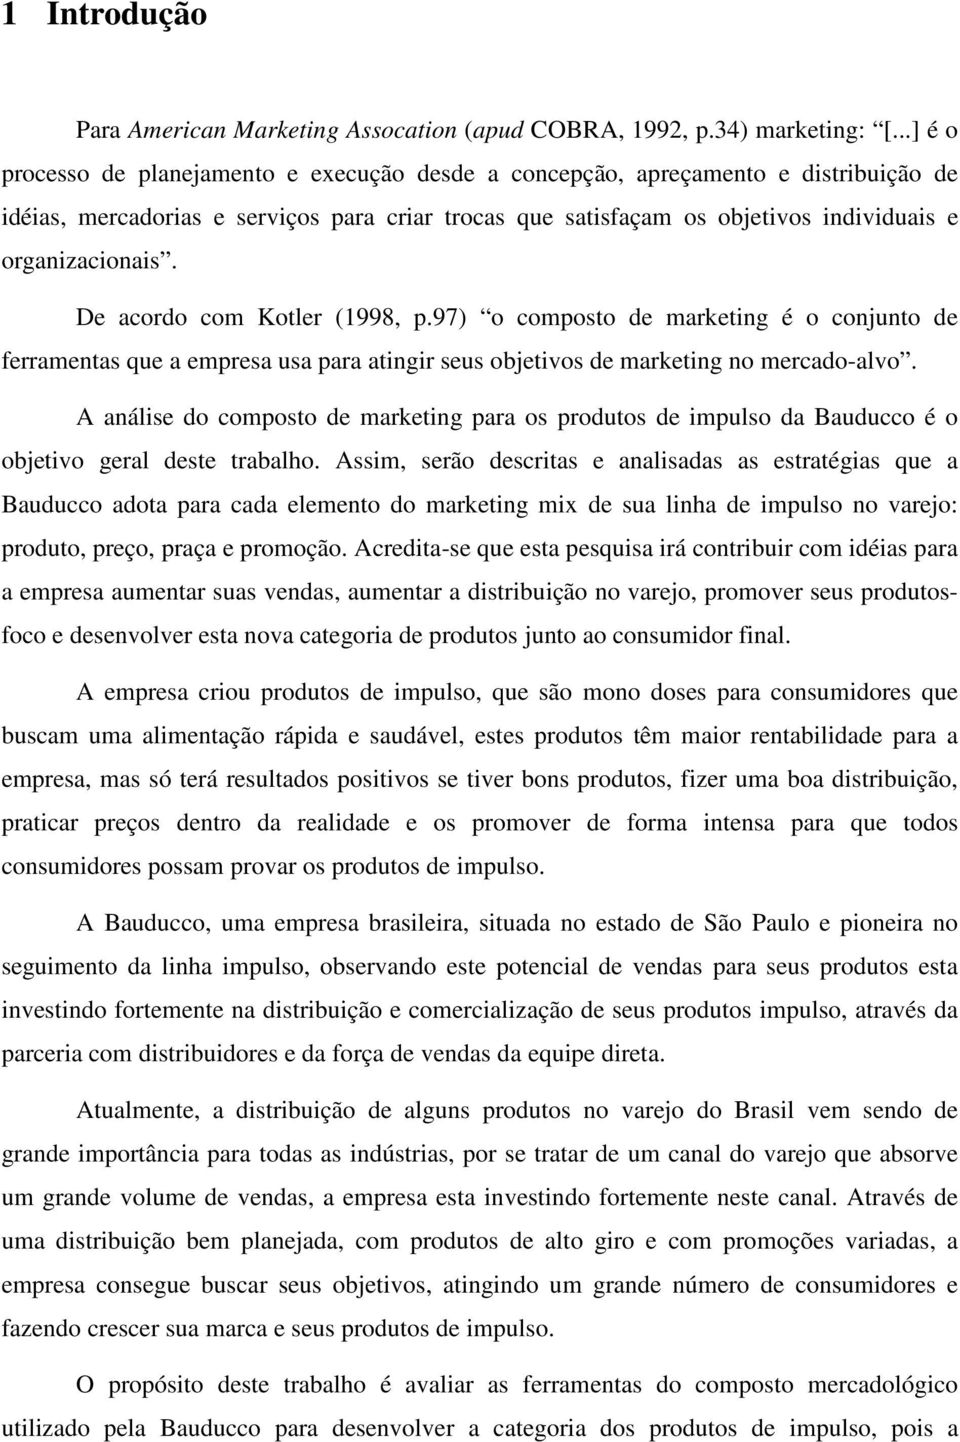 De acordo com Kotler (1998, p.97) o composto de marketing é o conjunto de ferramentas que a empresa usa para atingir seus objetivos de marketing no mercado-alvo.